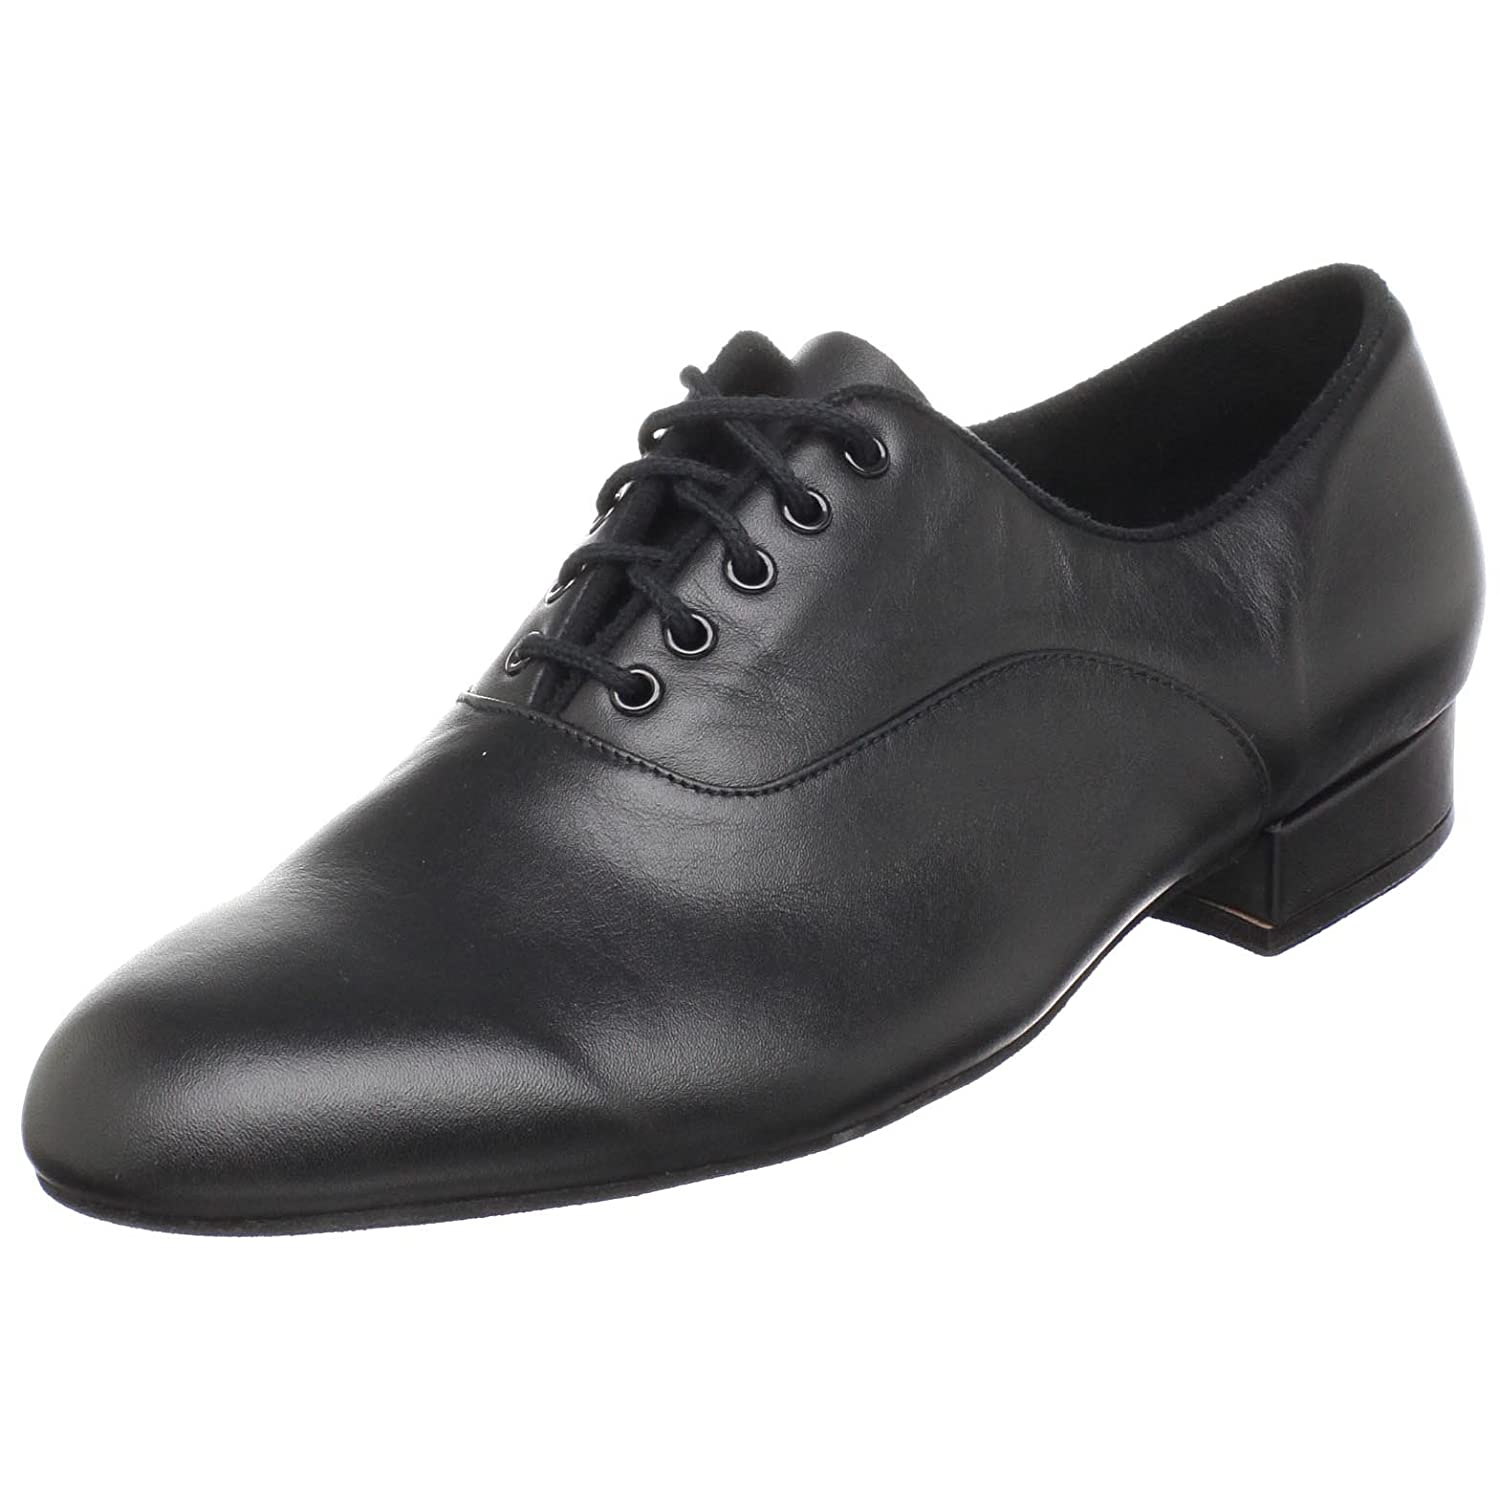 Bloch Dance Men's Xavier Ballroom Shoe S0860M